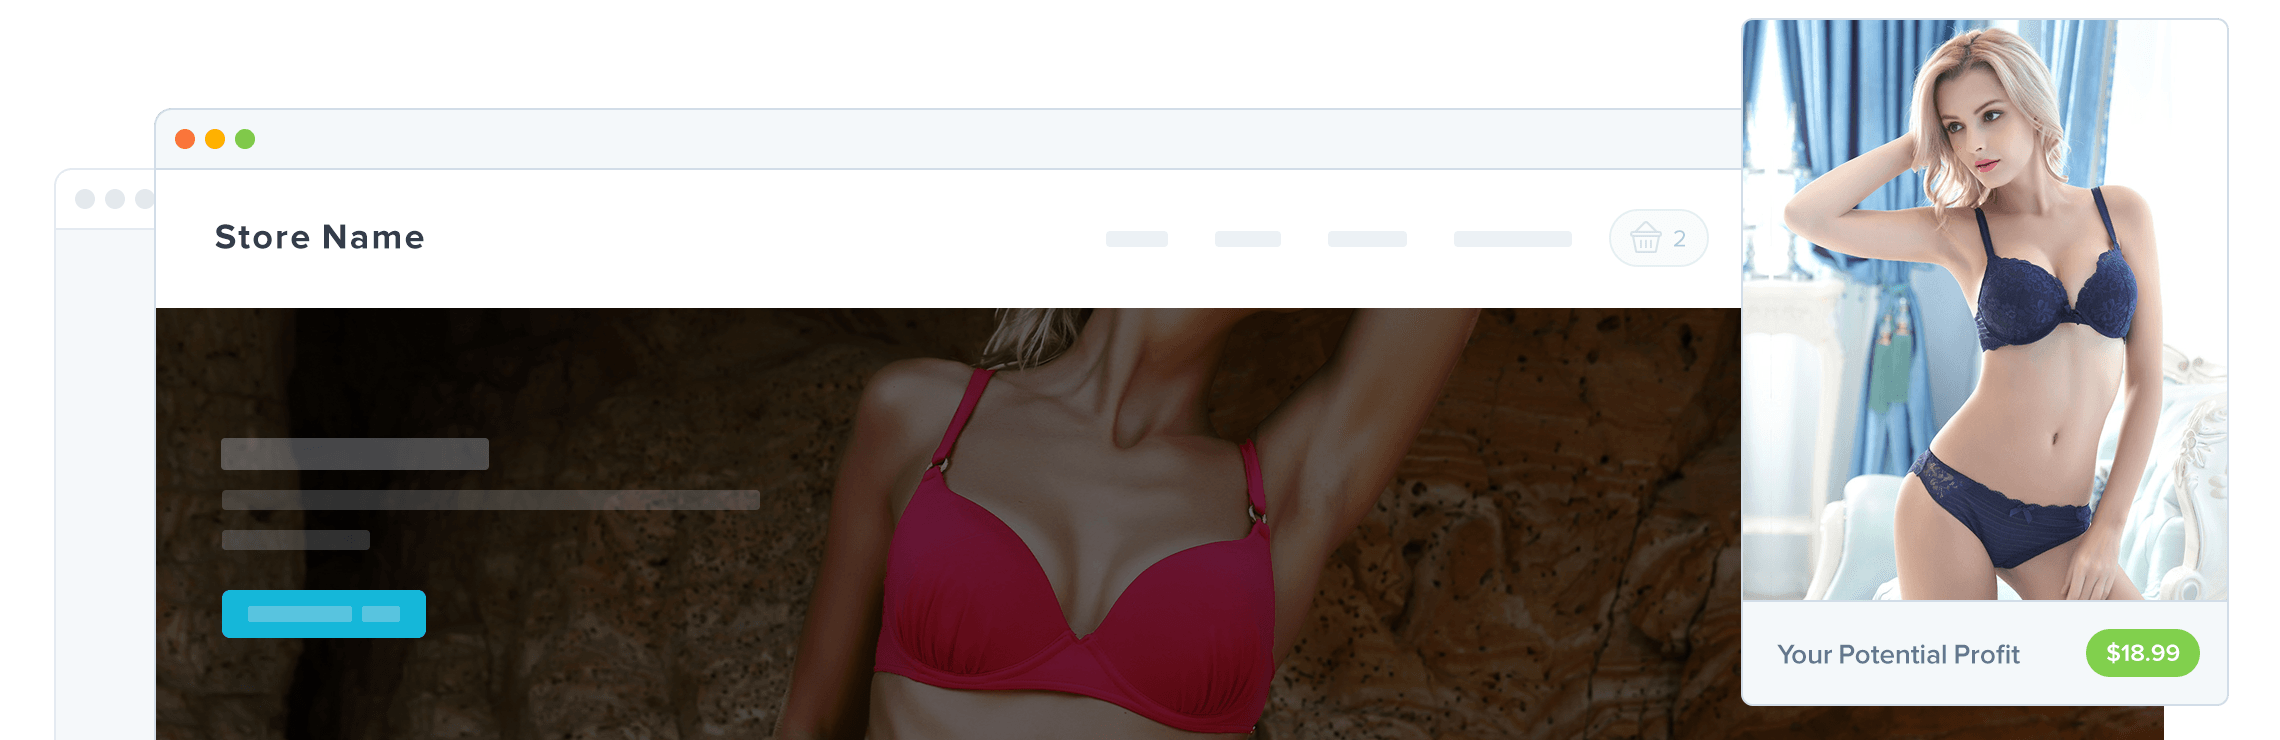 63509913ca 2280 x 740 4 0 · Top rating products brands. Bra transparent aliexpress  clipart freeuse library